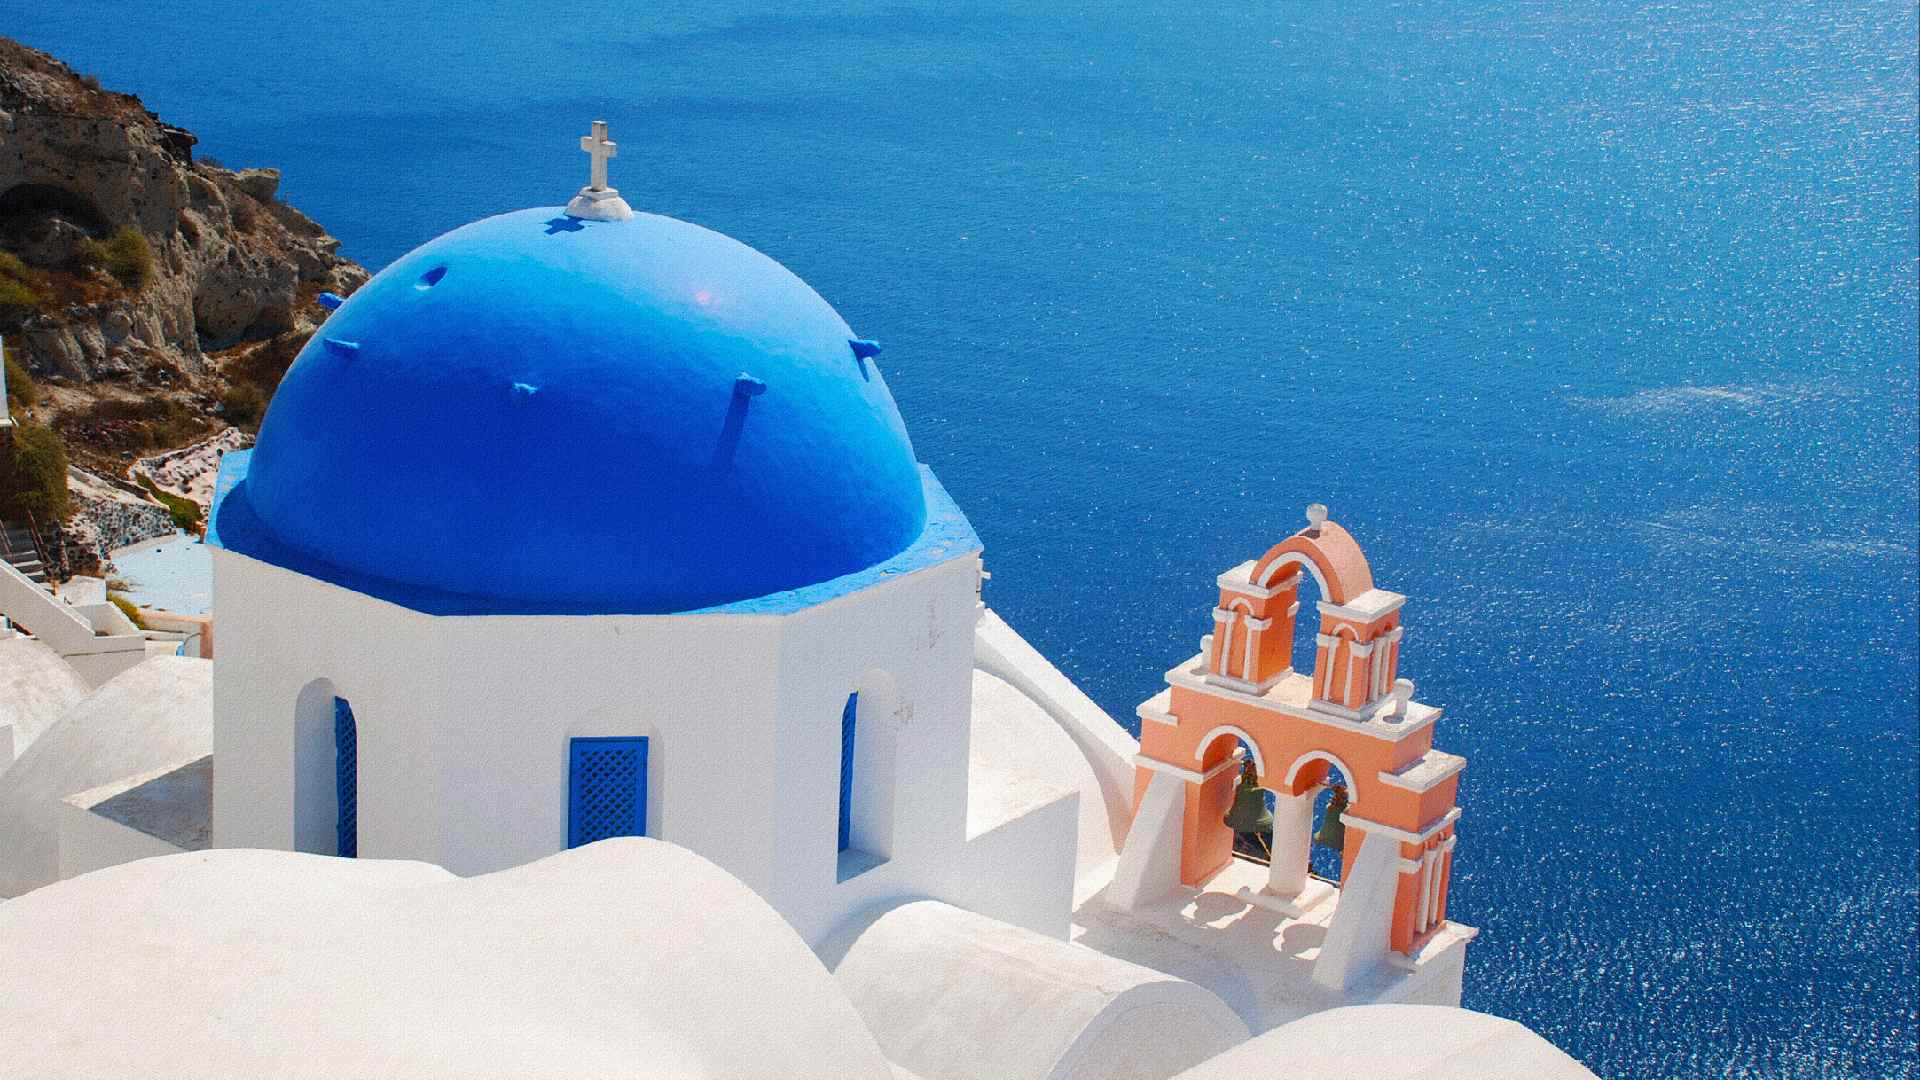 The Most Visited Summer Resorts in the Mediterranean